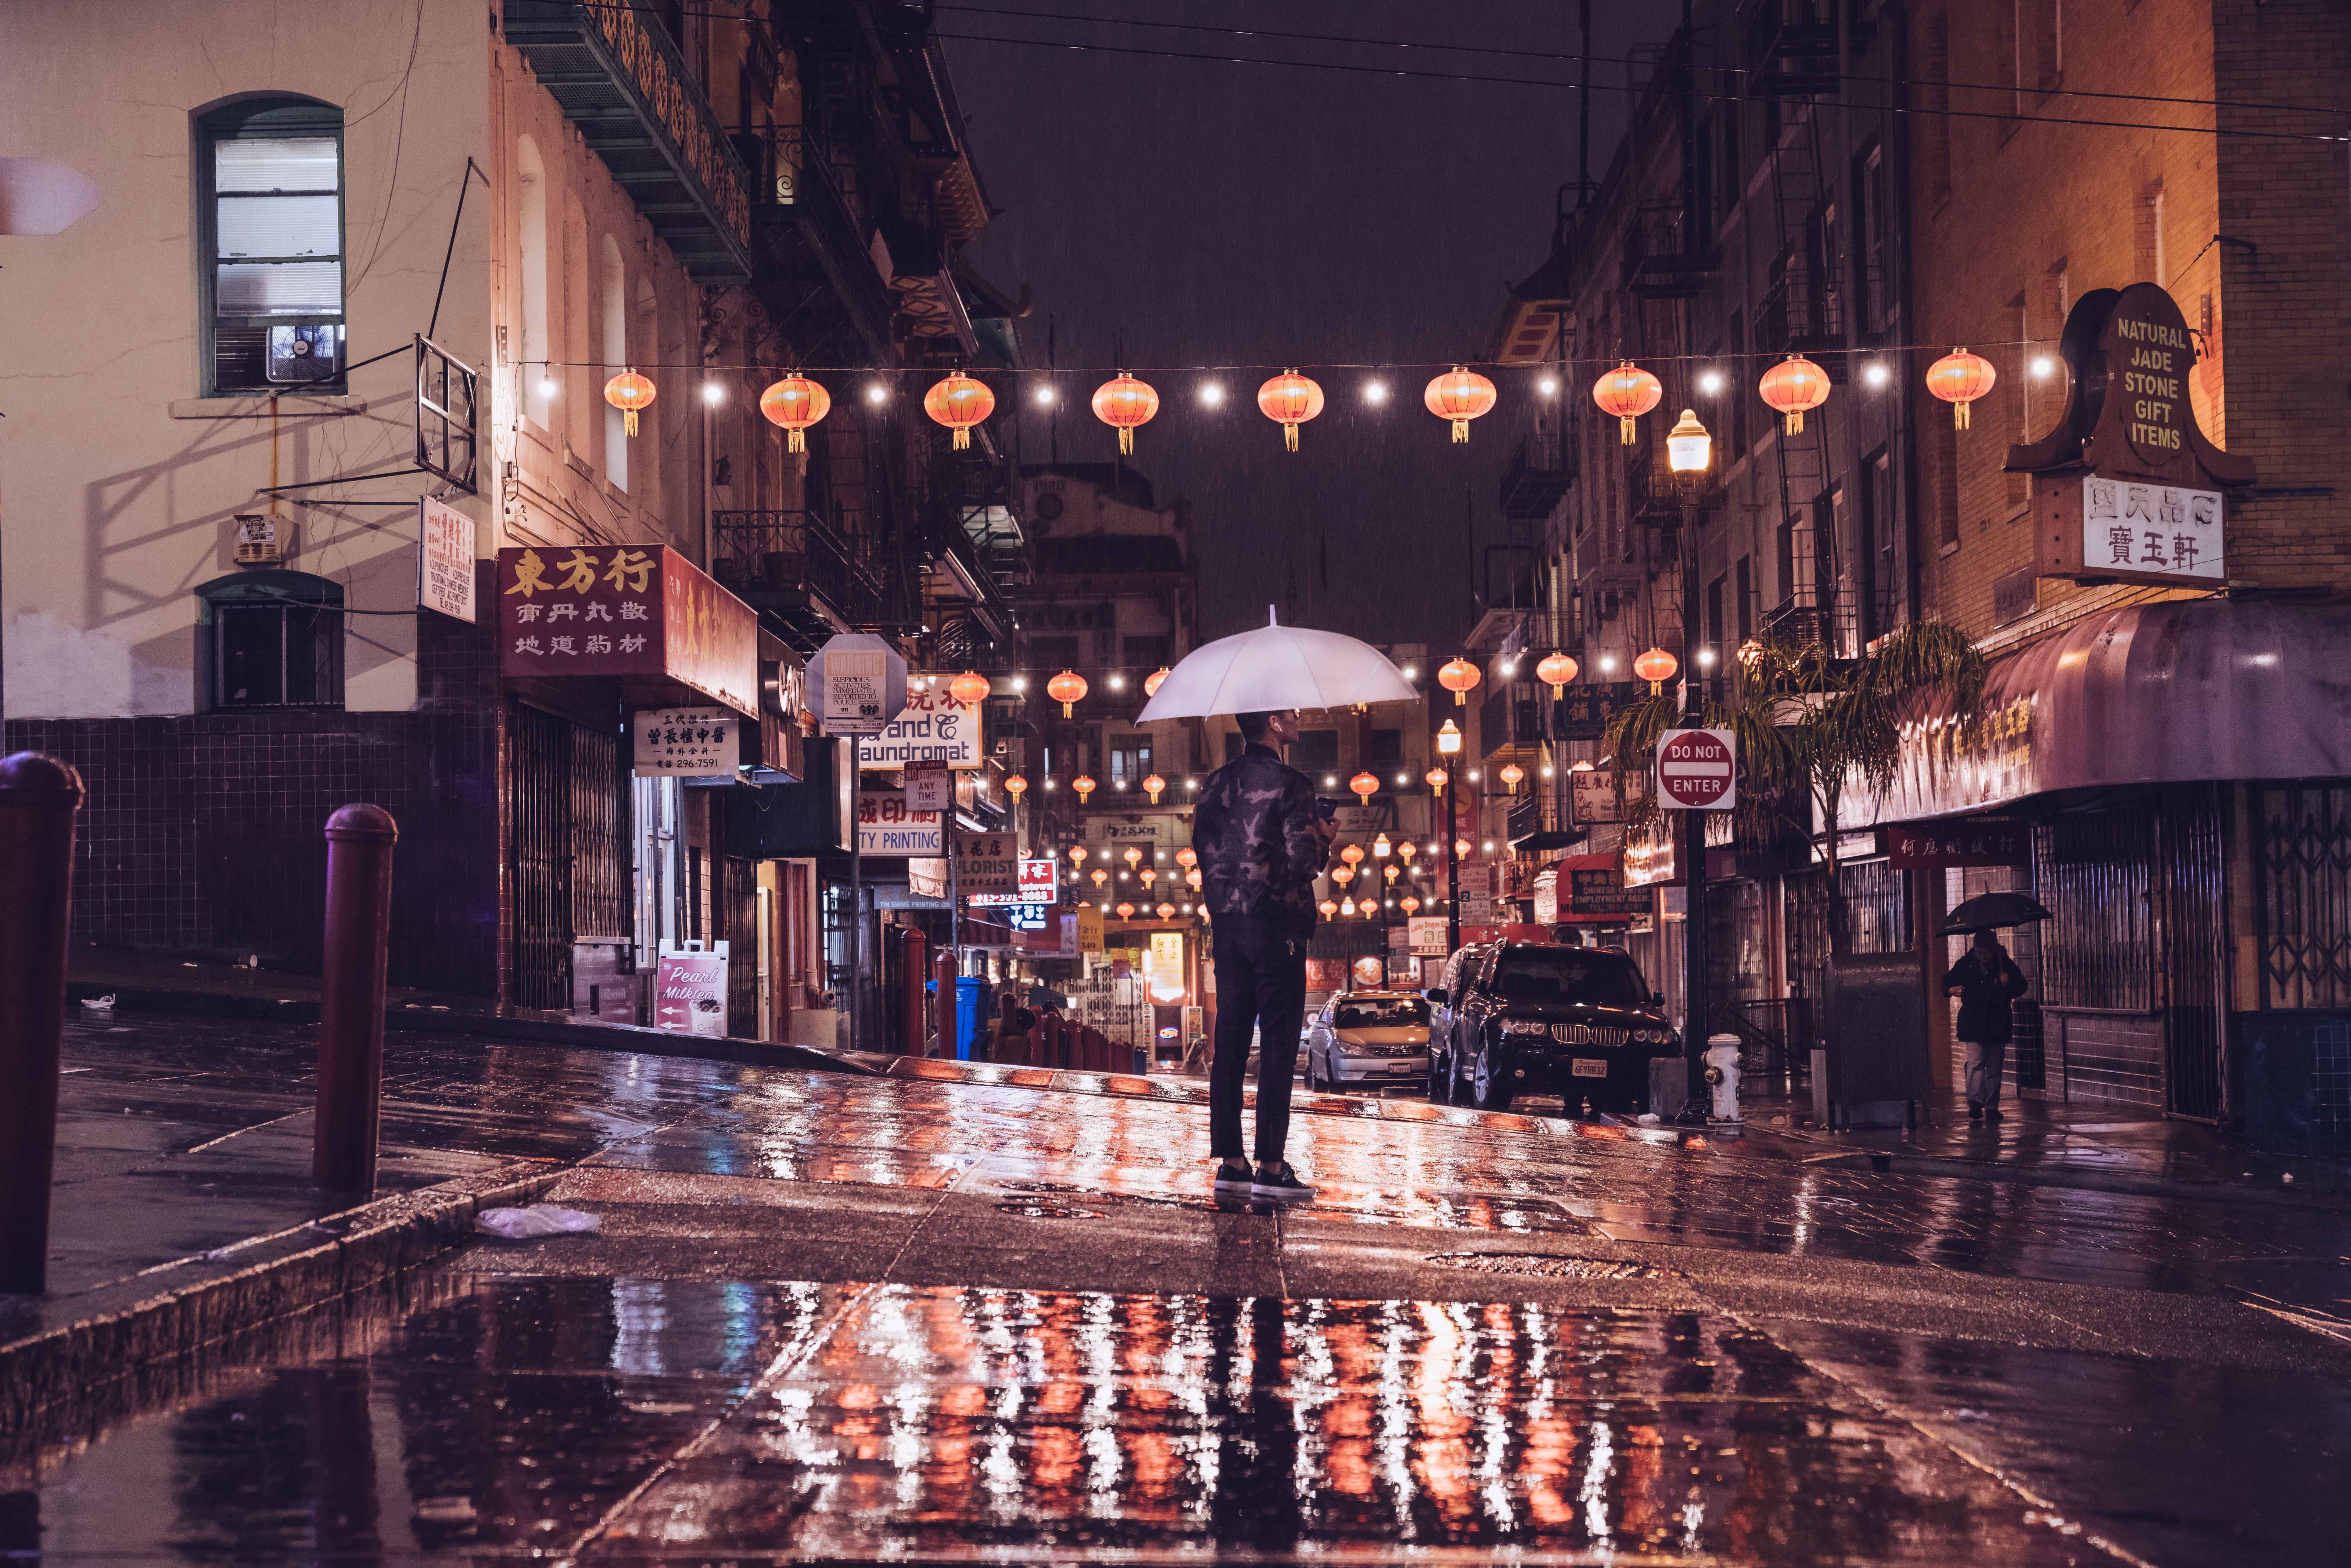 person standing on street holding umbrella during night time